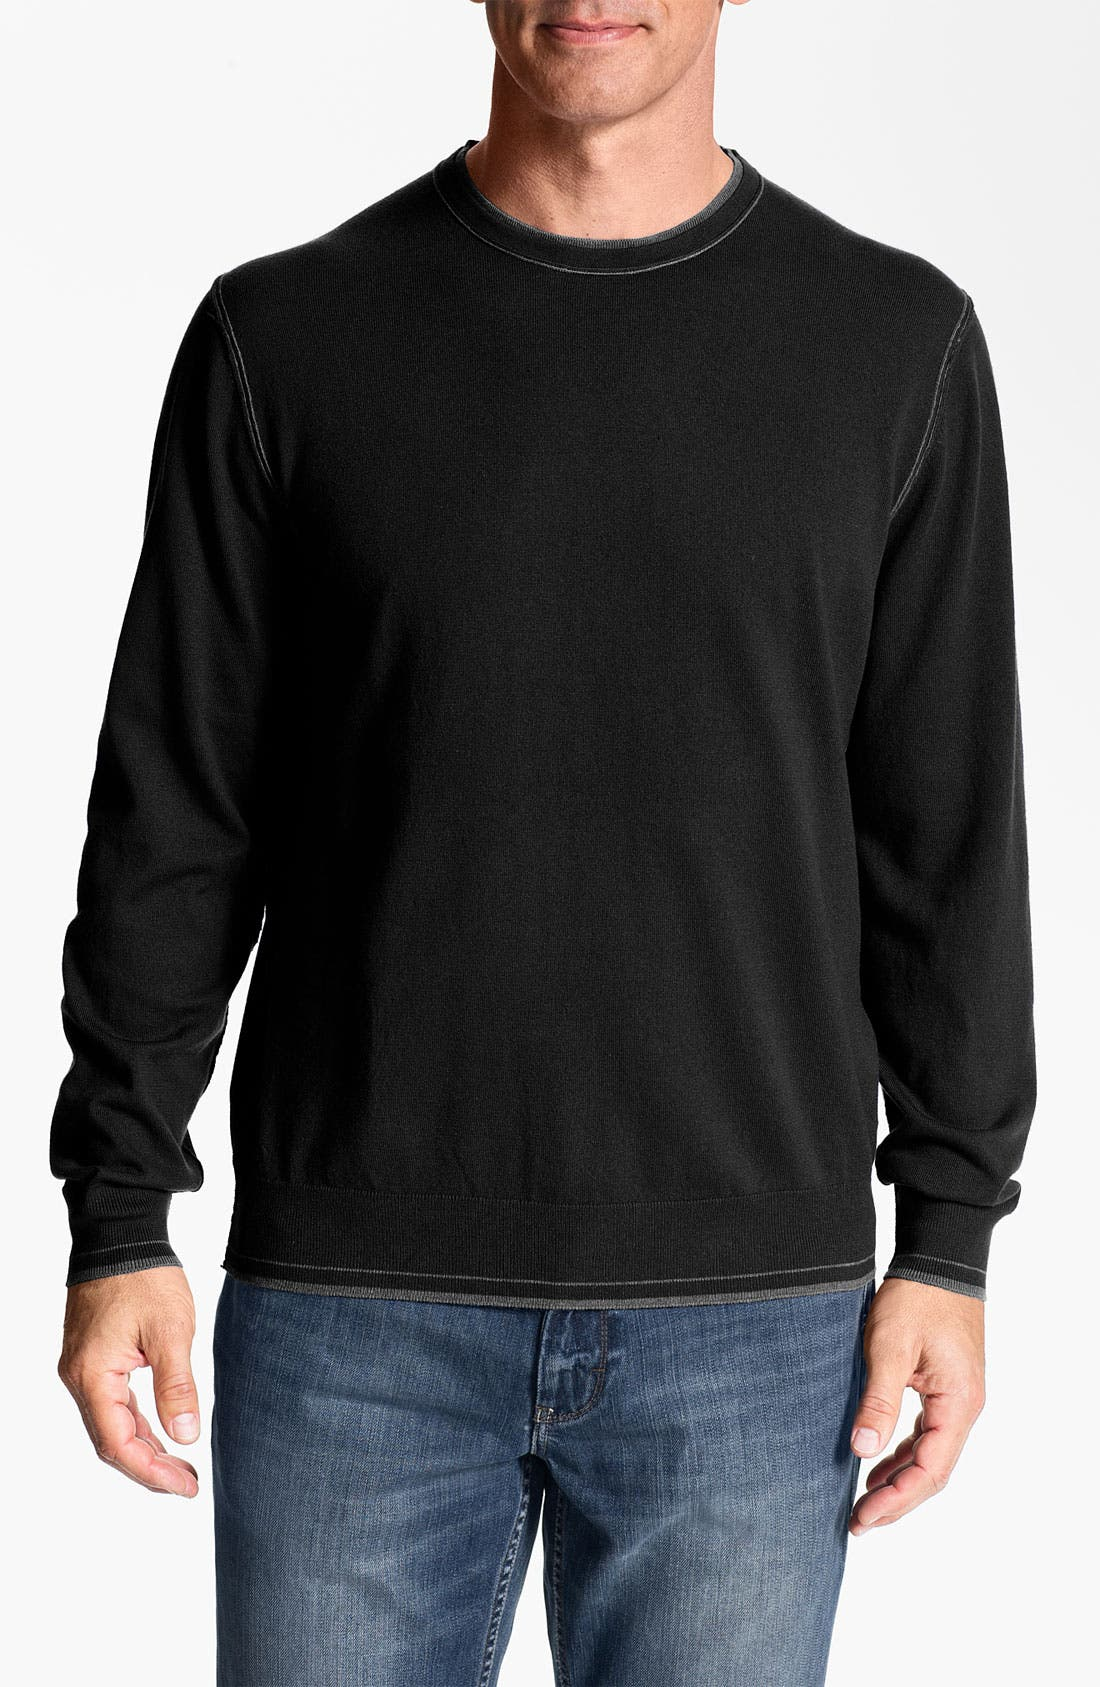 Alternate Image 1 Selected - Tommy Bahama 'Johnny Cashmere' Crewneck Cashmere Blend Sweater